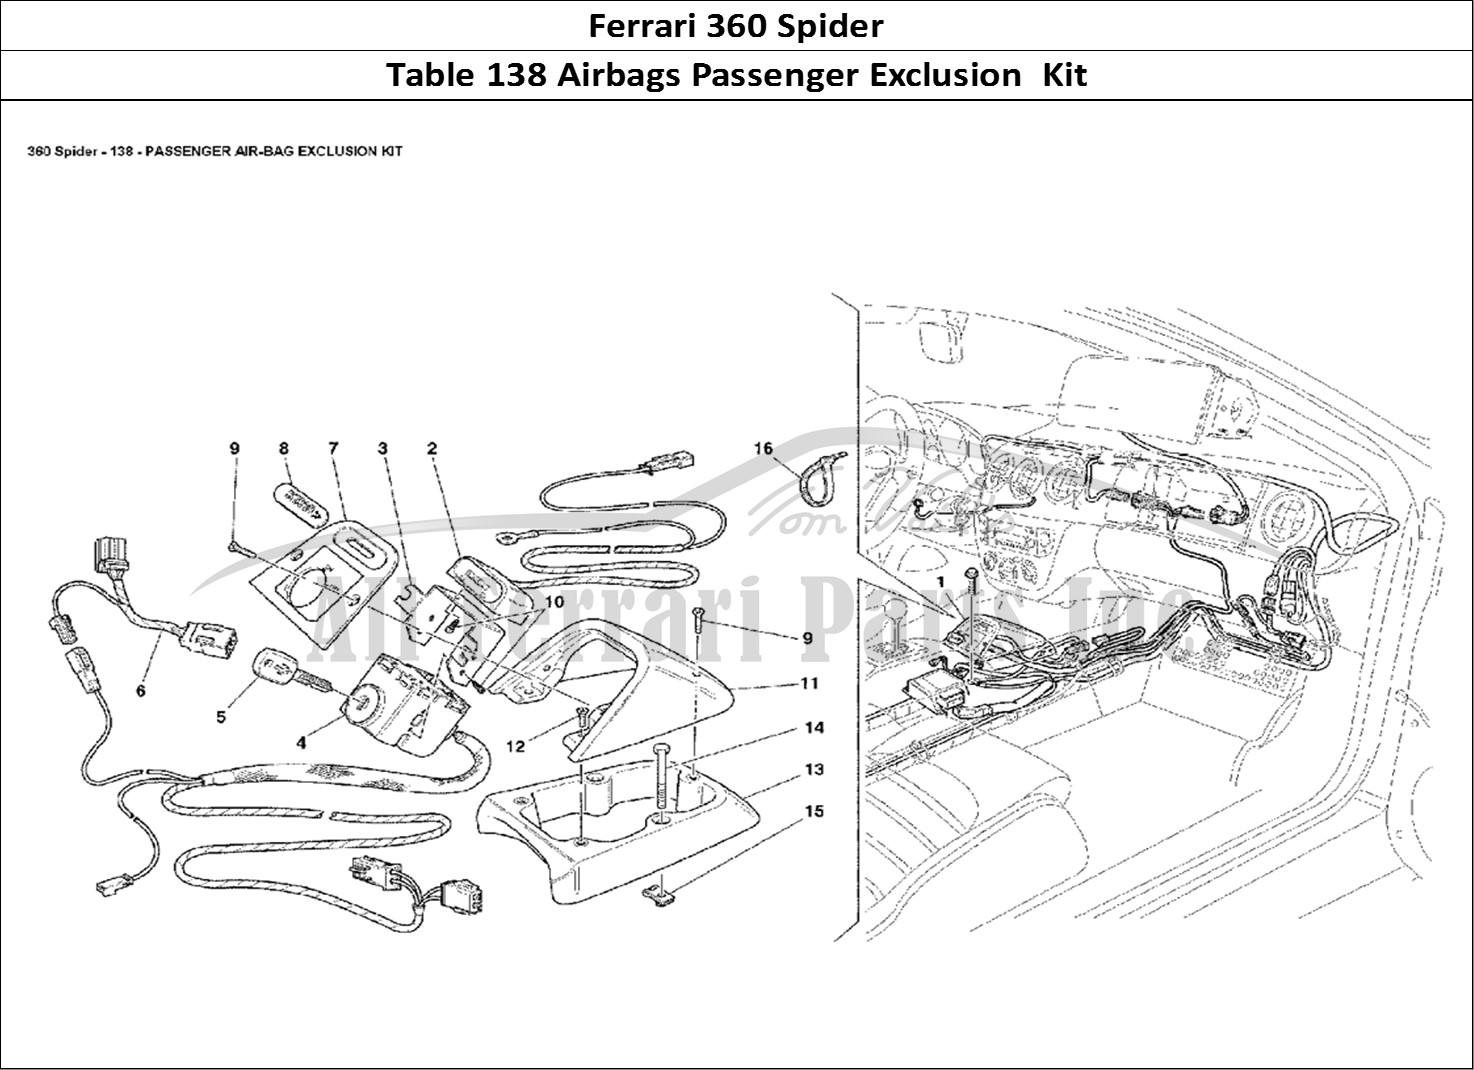 Ferrari 348 Engine Diagram. Ferrari. Auto Wiring Diagram